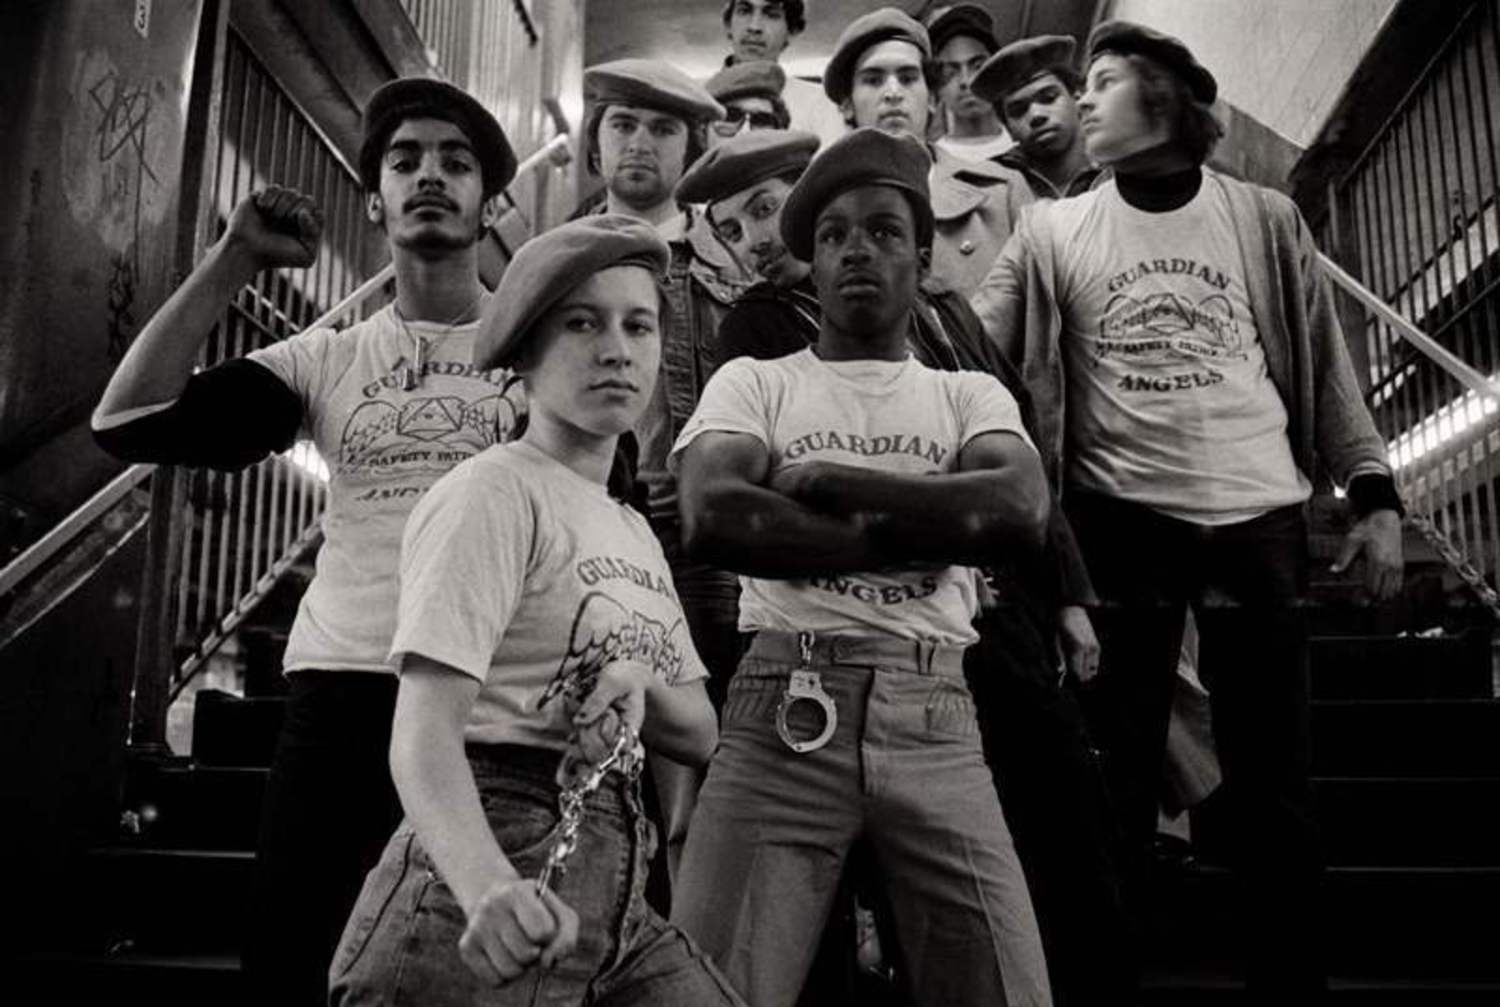 Crime also became a chronic issue for the subway stations at Times Square. Above, a team of the Guardian Angels -- a volunteer patrol group dedicated to making New York's subway system safe -- get ready to go on patrol in 1980.